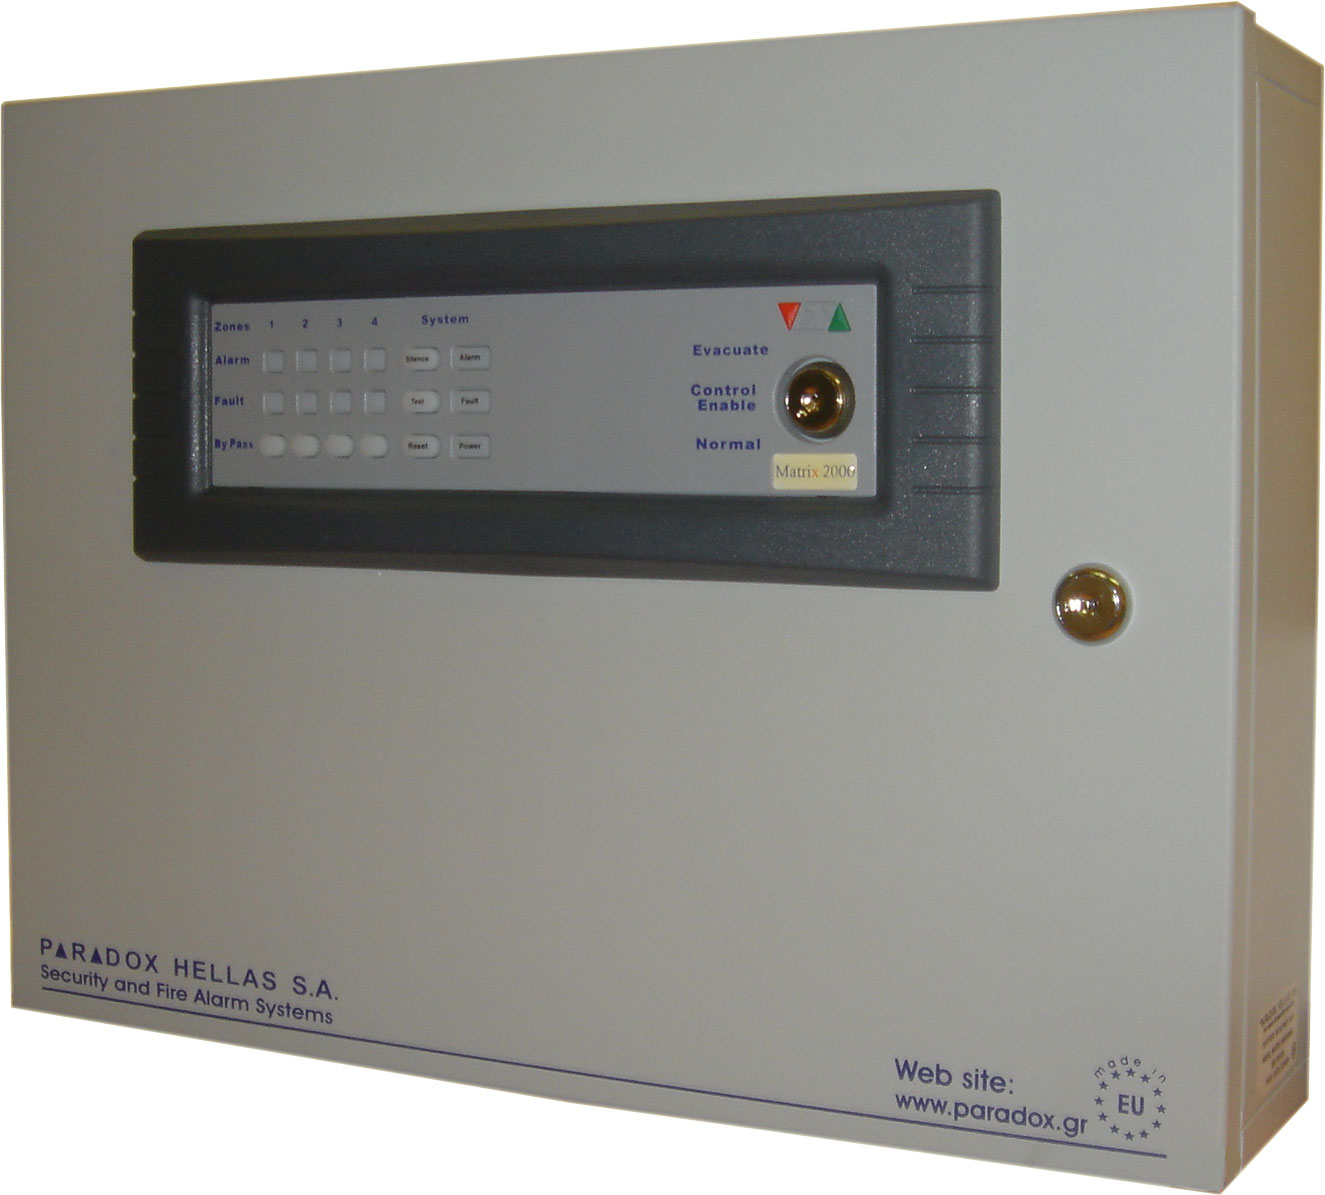 FOC-200 | Micro process engineered PARADOX HELLAS fire detection central station of 4 zones